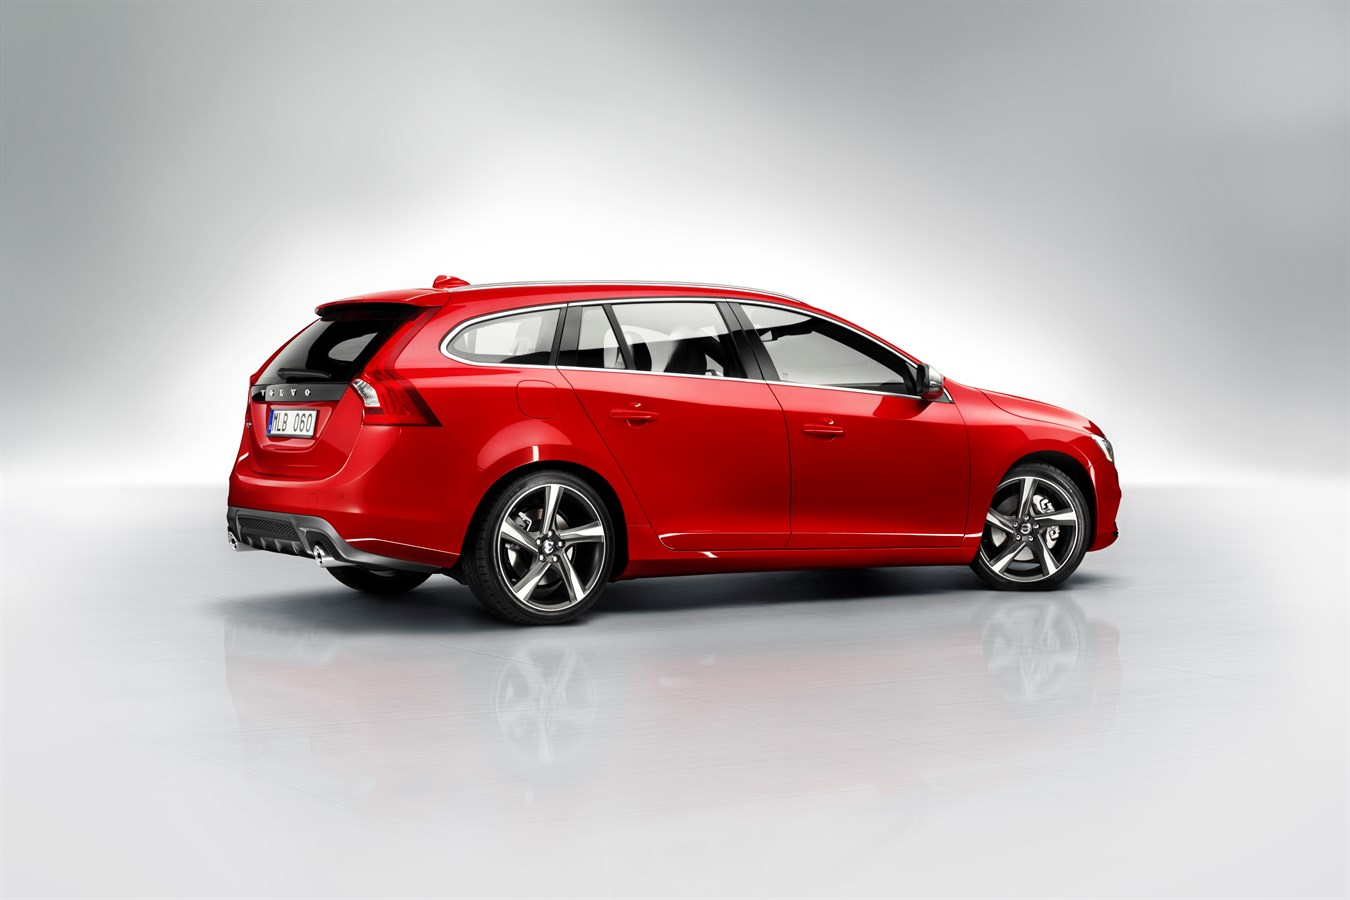 stylish pictures official the by volvo huh news estate date release interior pretty new first car uk price and